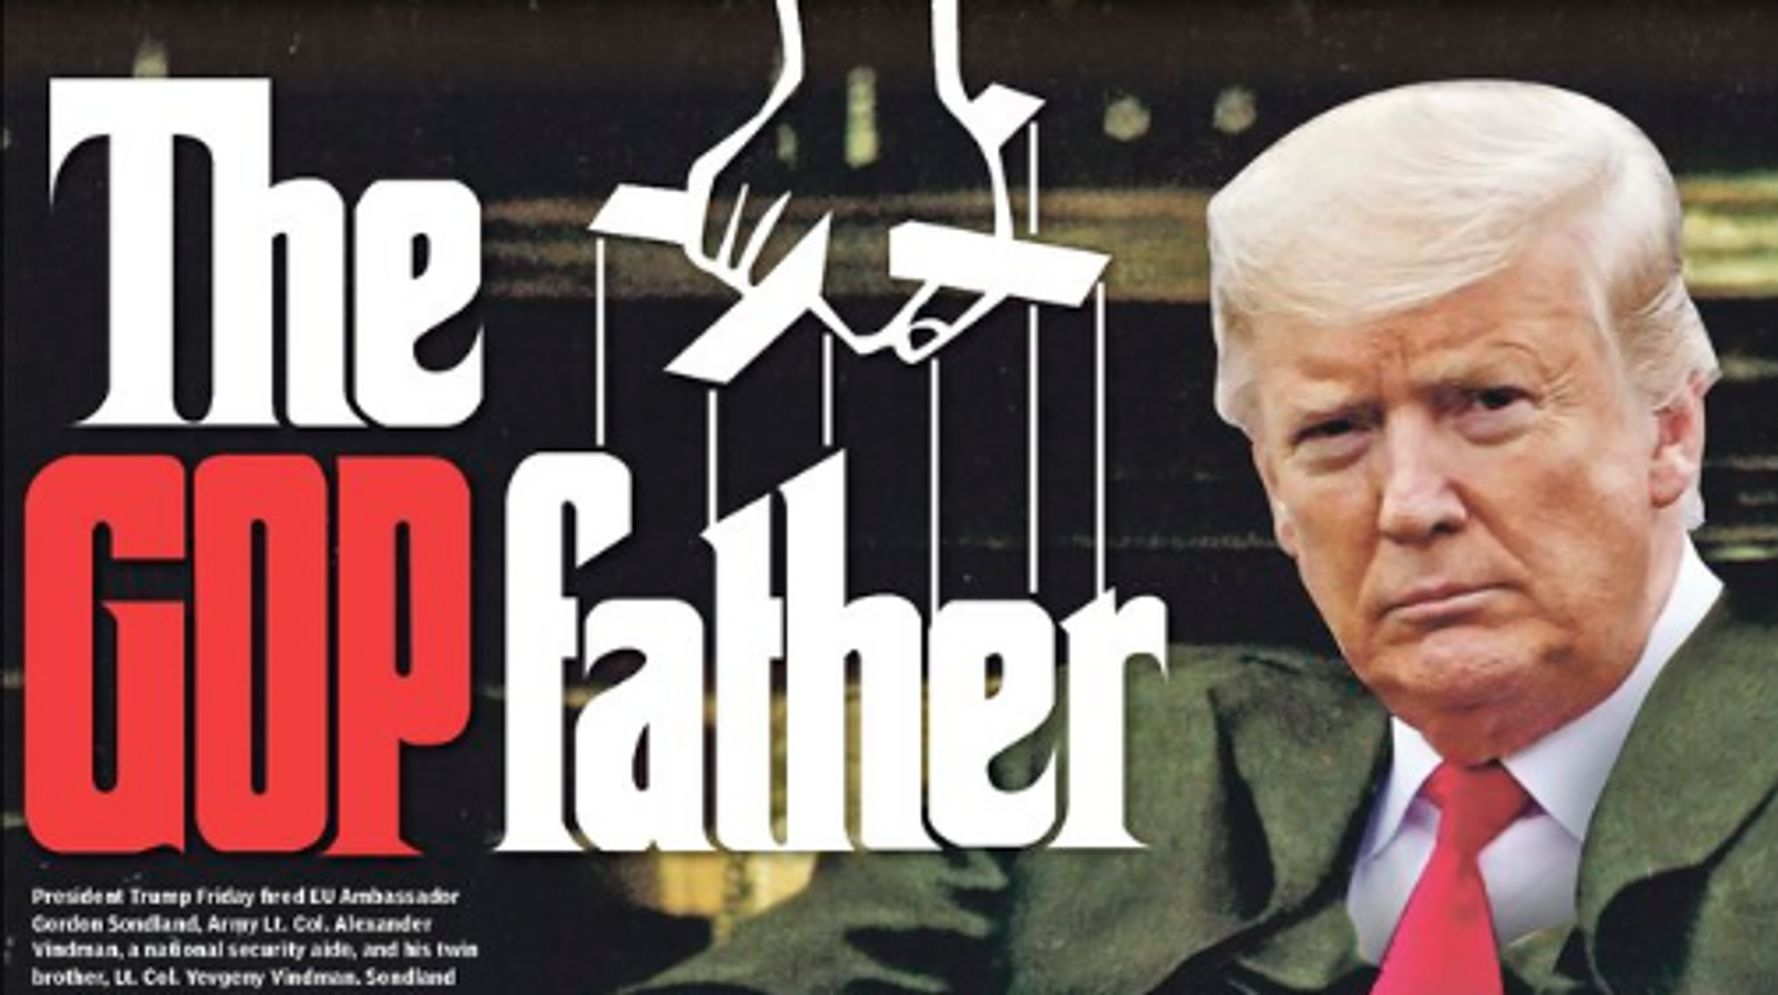 New York Daily News Slaps Trump With A Searing Mob Movie Nickname